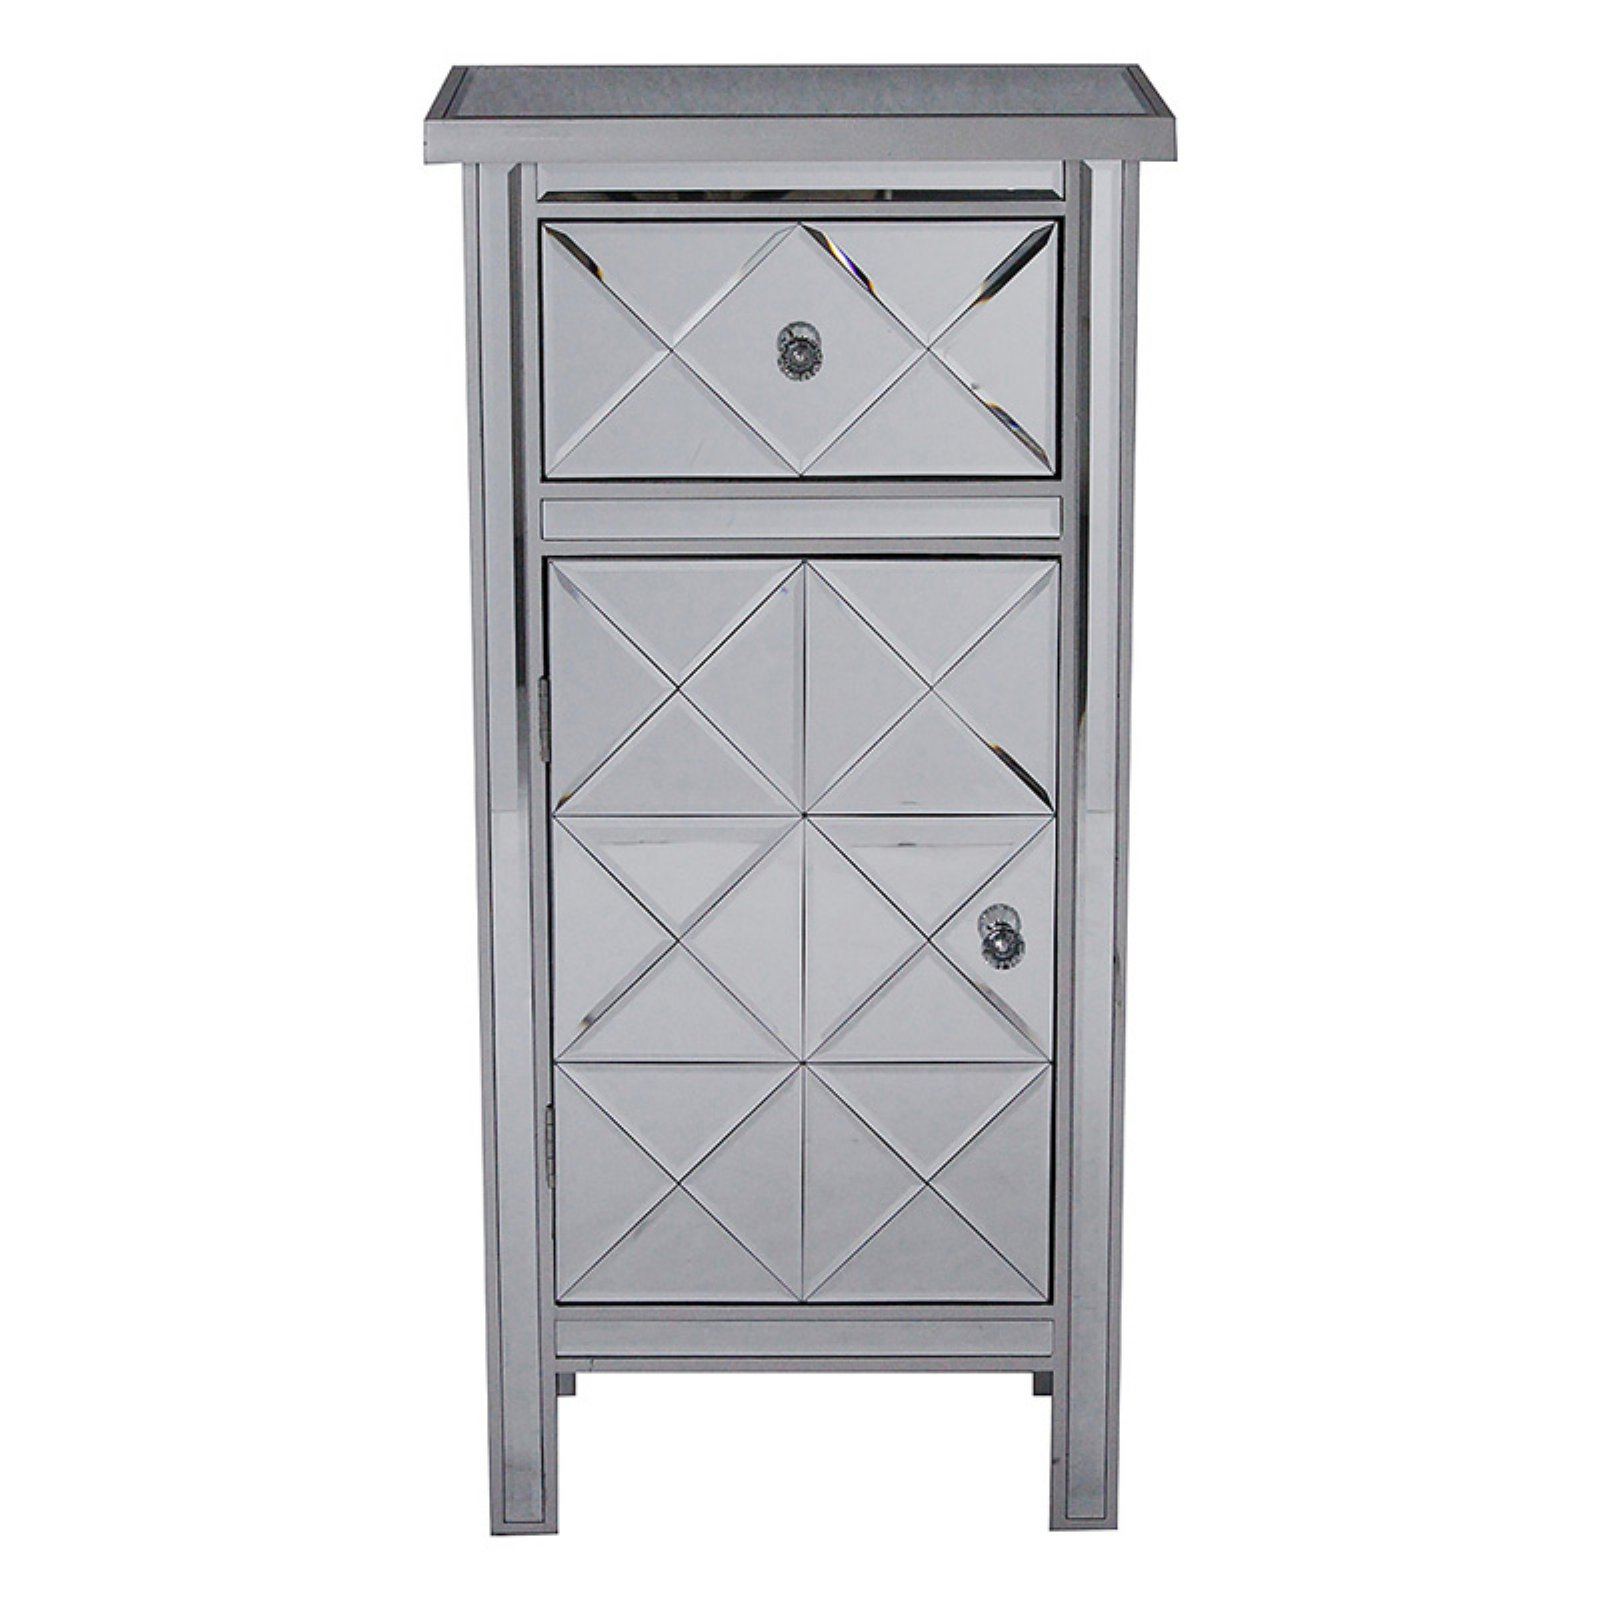 Heather Ann Creations Emmy Mirrored Tall Accent Cabinet